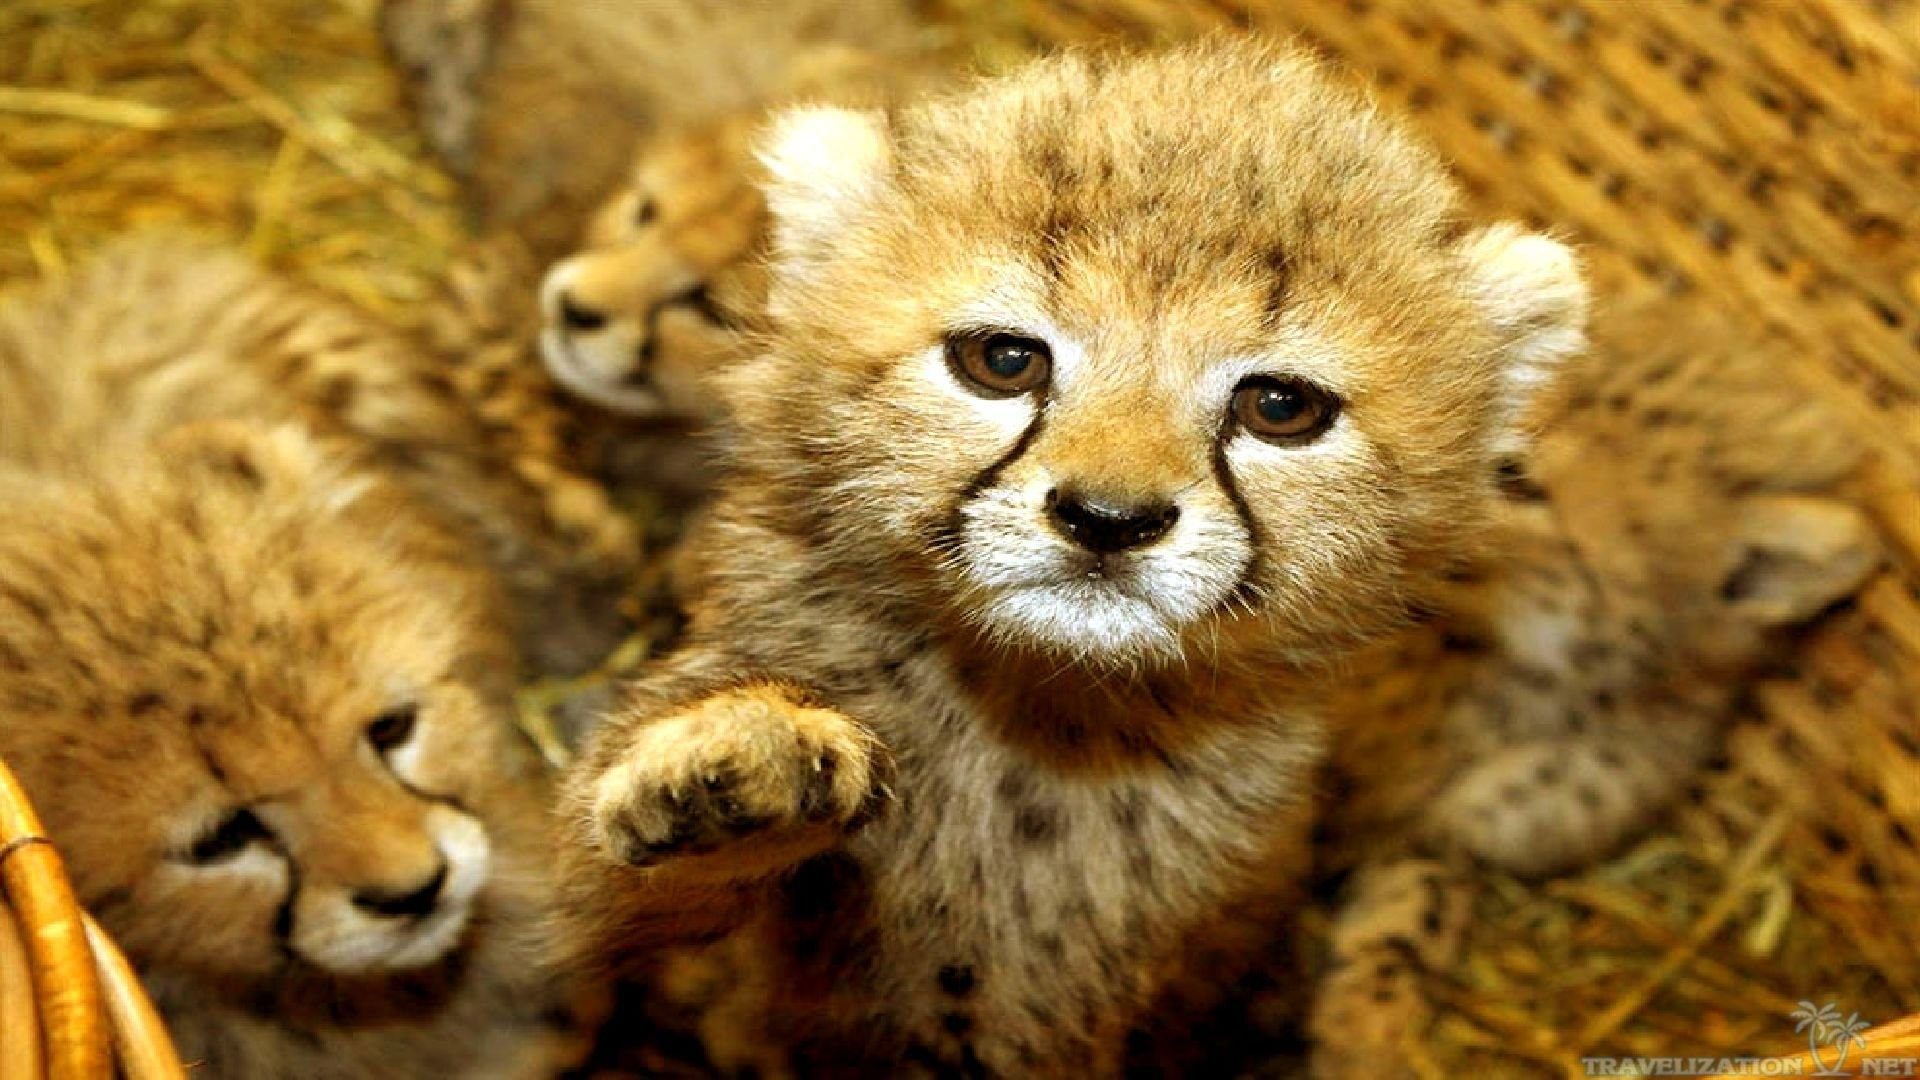 Collection Of Best Animal Wallpapers: Spring Baby Animals Desktop Wallpapers (48+ Images